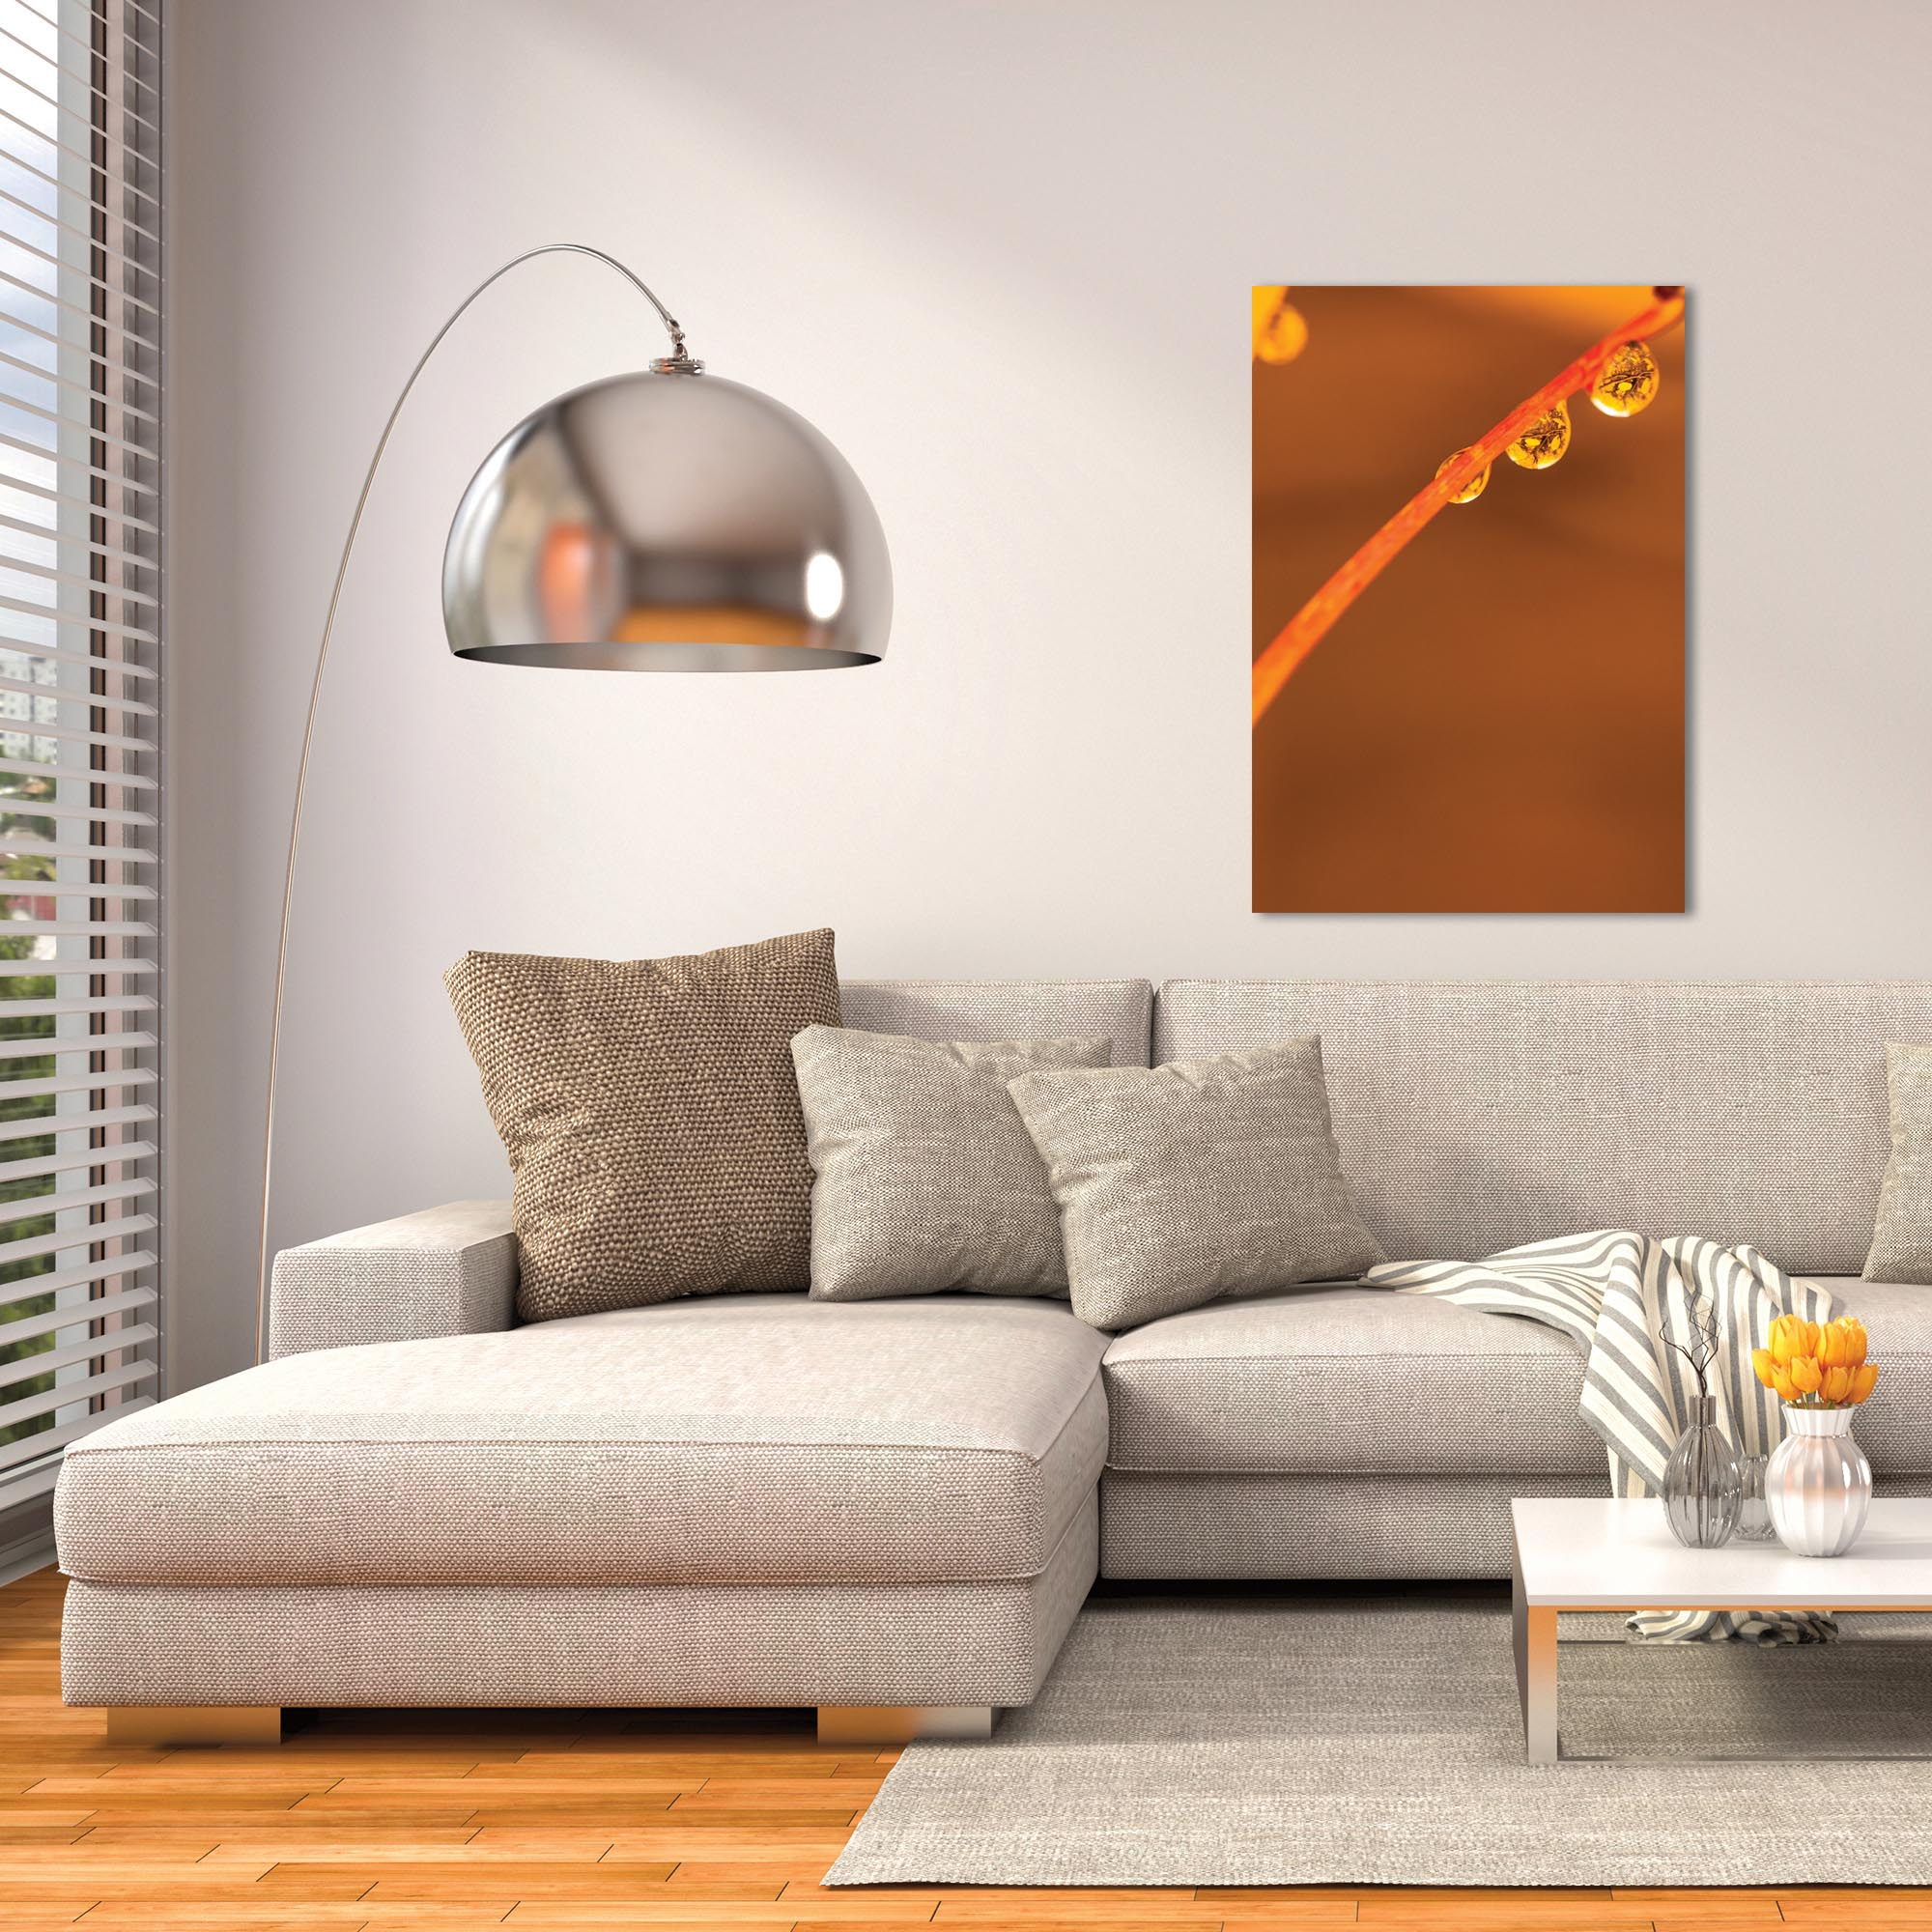 Nature Photography 'Morning Dew' - Autumn Leaves Art on Metal or Plexiglass - Lifestyle View